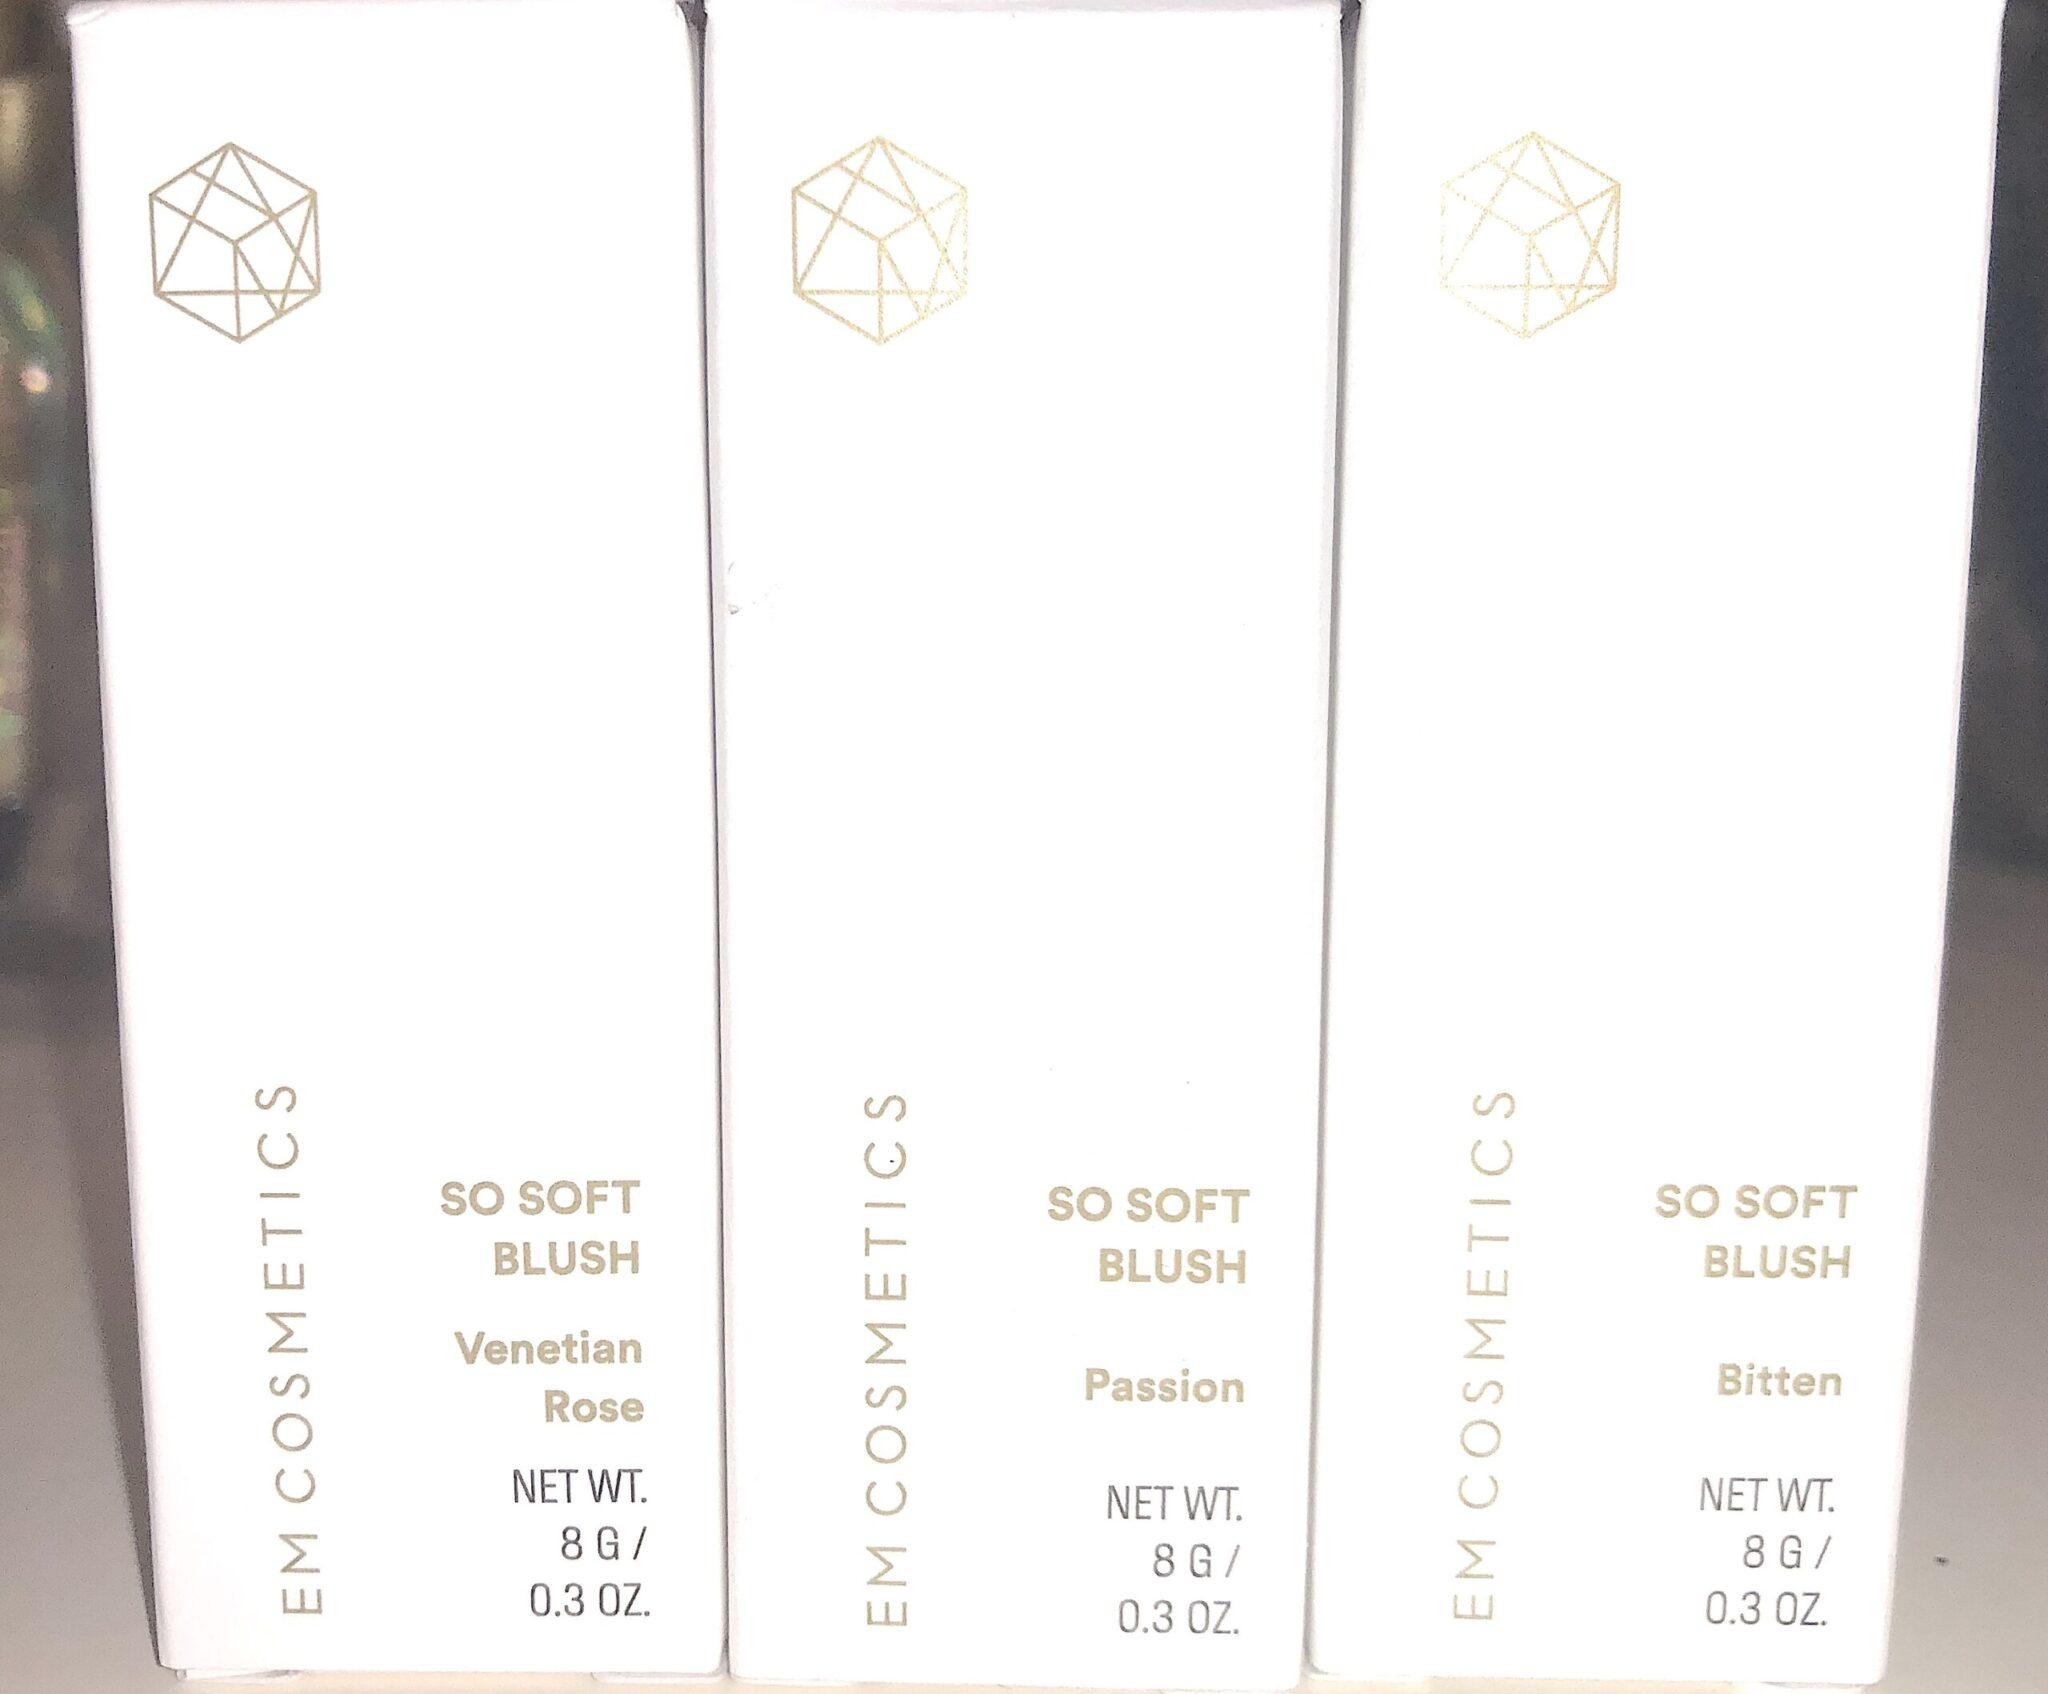 EM COSMETICS SO SOFT BLUSH COLLECTION OUTER BOXES